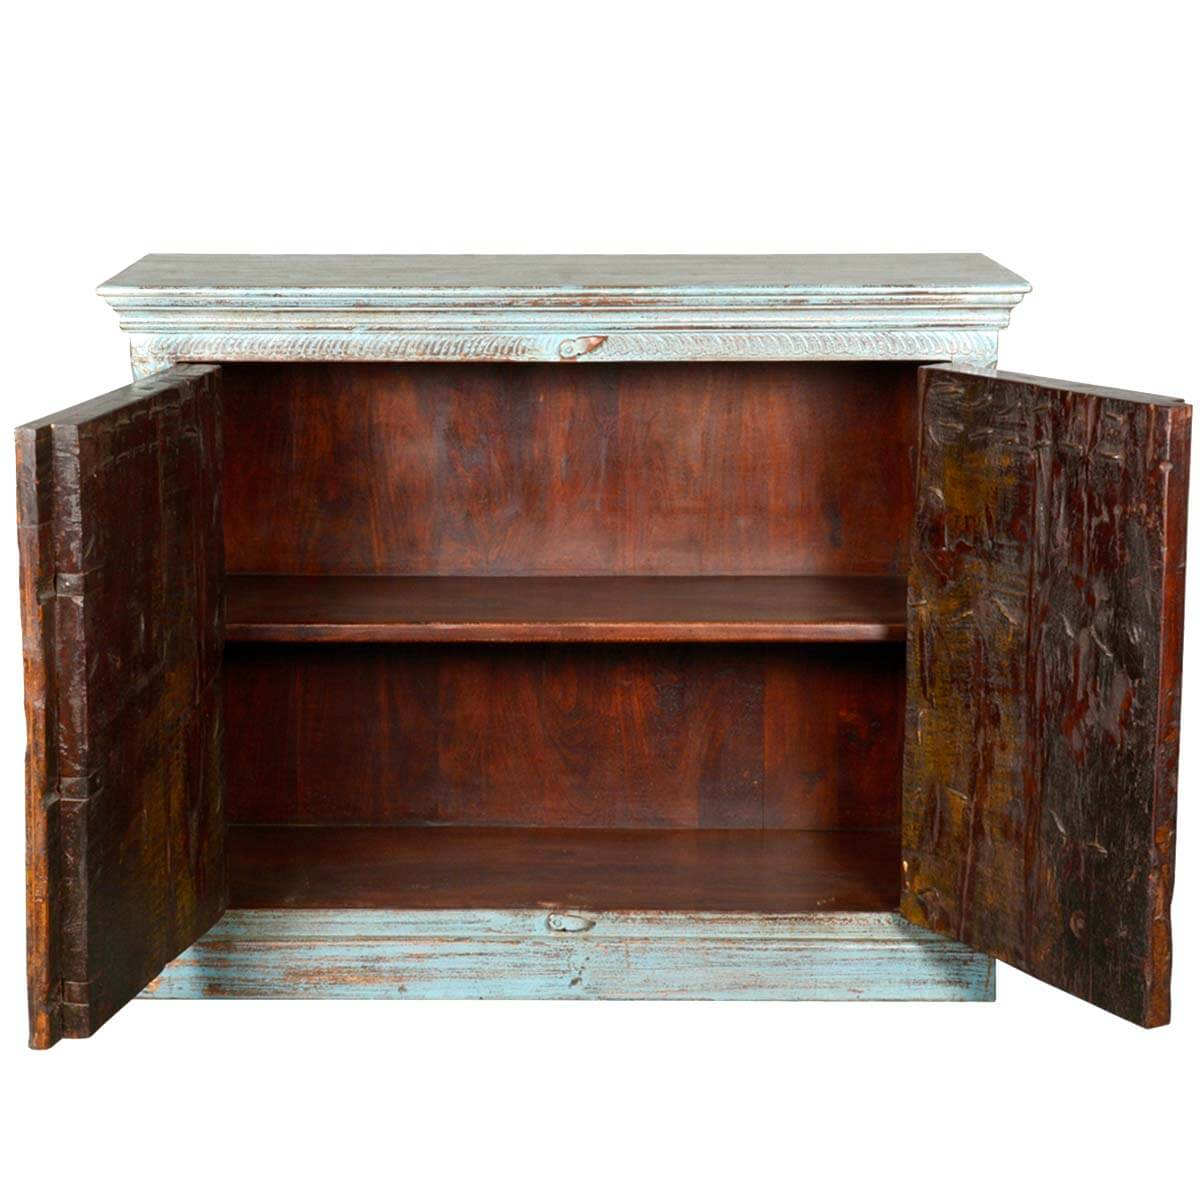 Marvelous photograph of  Collection Rustic White Washed Reclaimed Wood Buffet Sideboard Cabinet with #371C10 color and 1200x1200 pixels